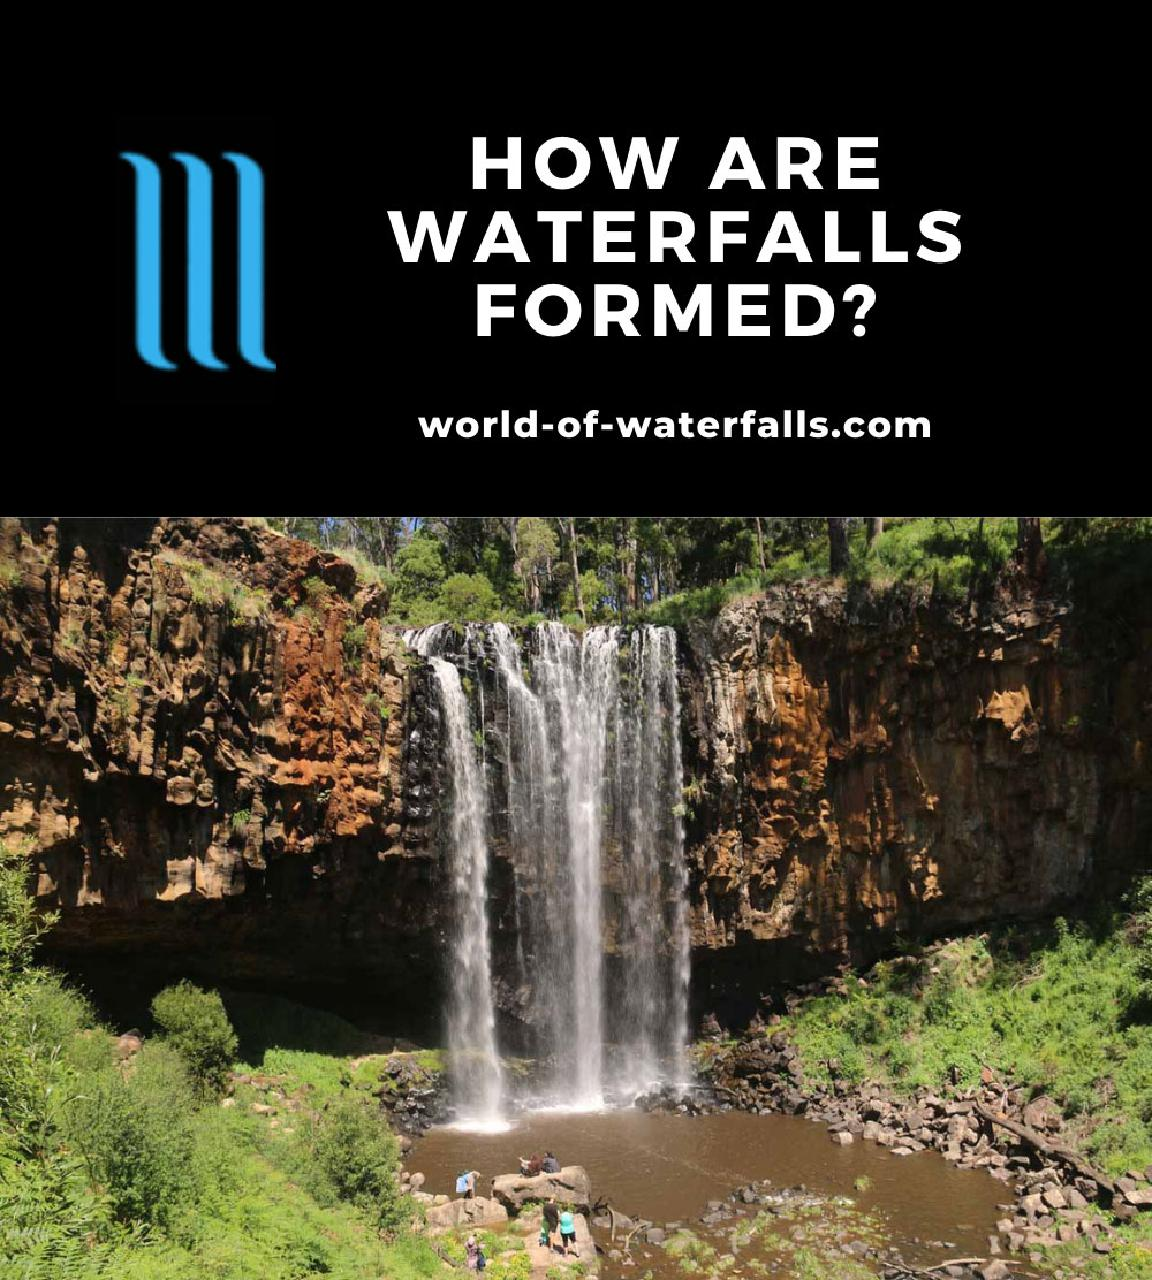 How Are Waterfalls Formed?